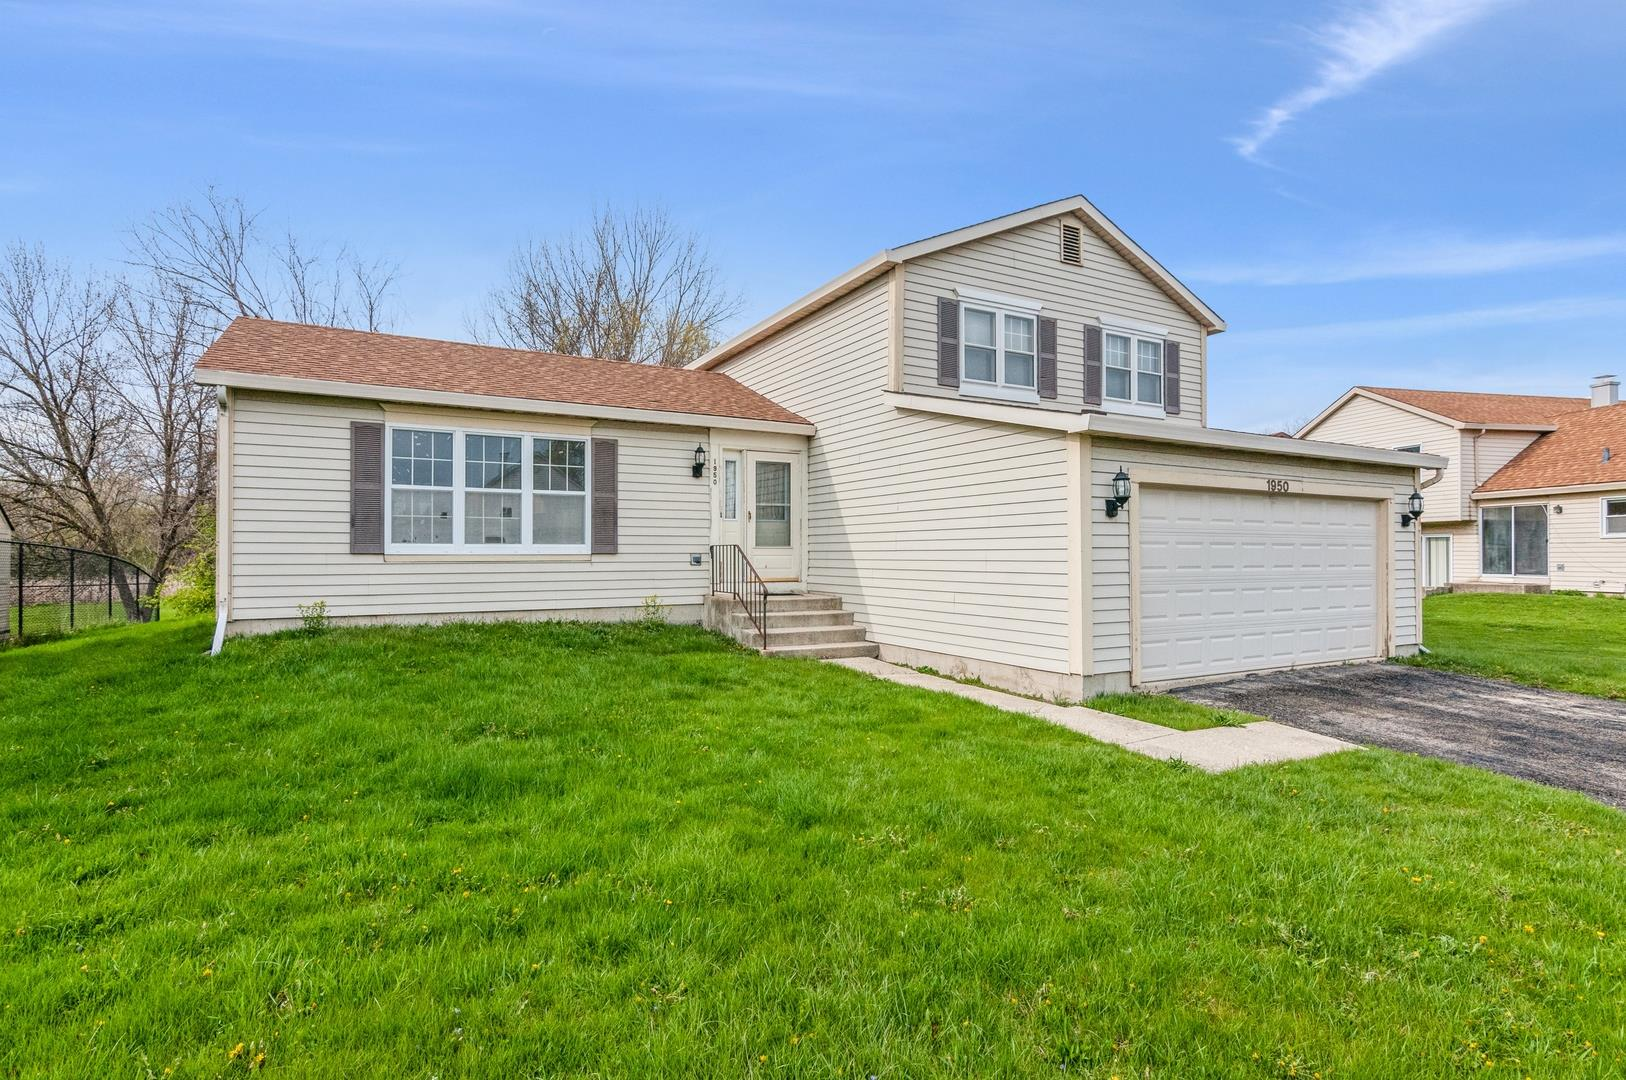 1950 S Valley Road, Lombard, IL 60148 - #: 11057744